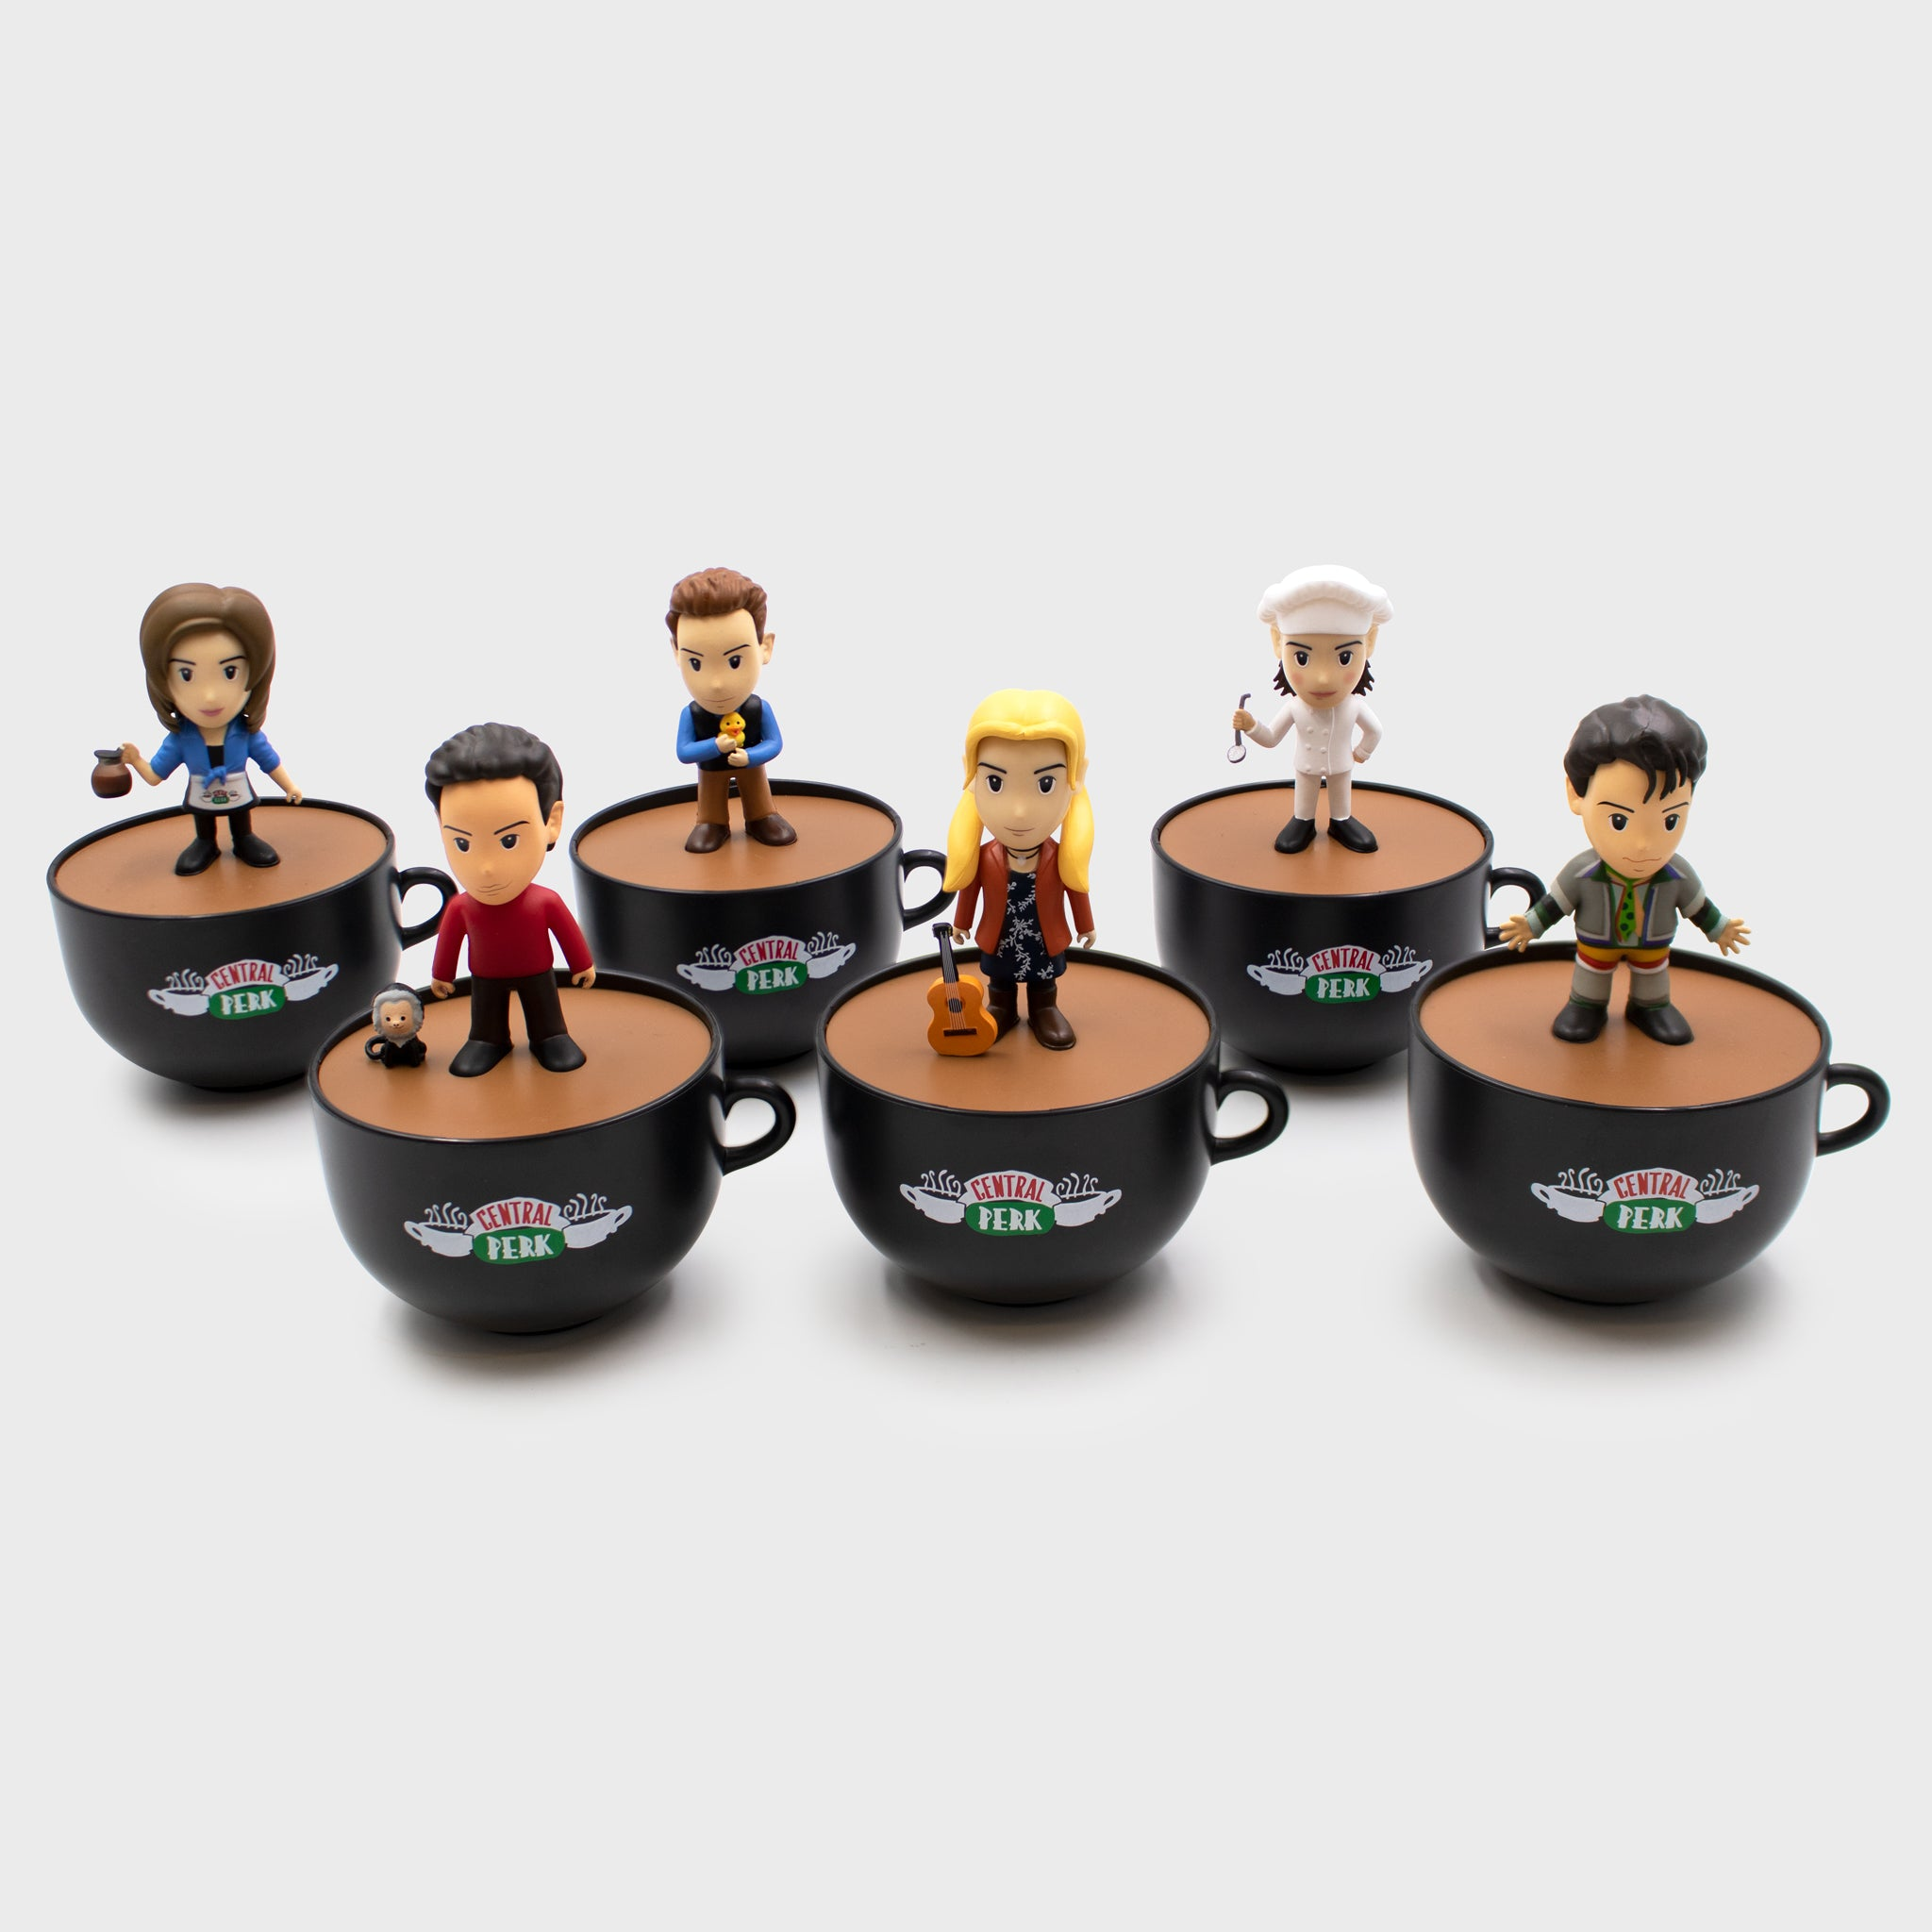 smols culturefly friends tv show warner brothers wb '90s sitcom chandler bing monica geller ross geller rachel greene joey tribbiani phoebe buffay collectibles blind bags mystery mini figurines collection